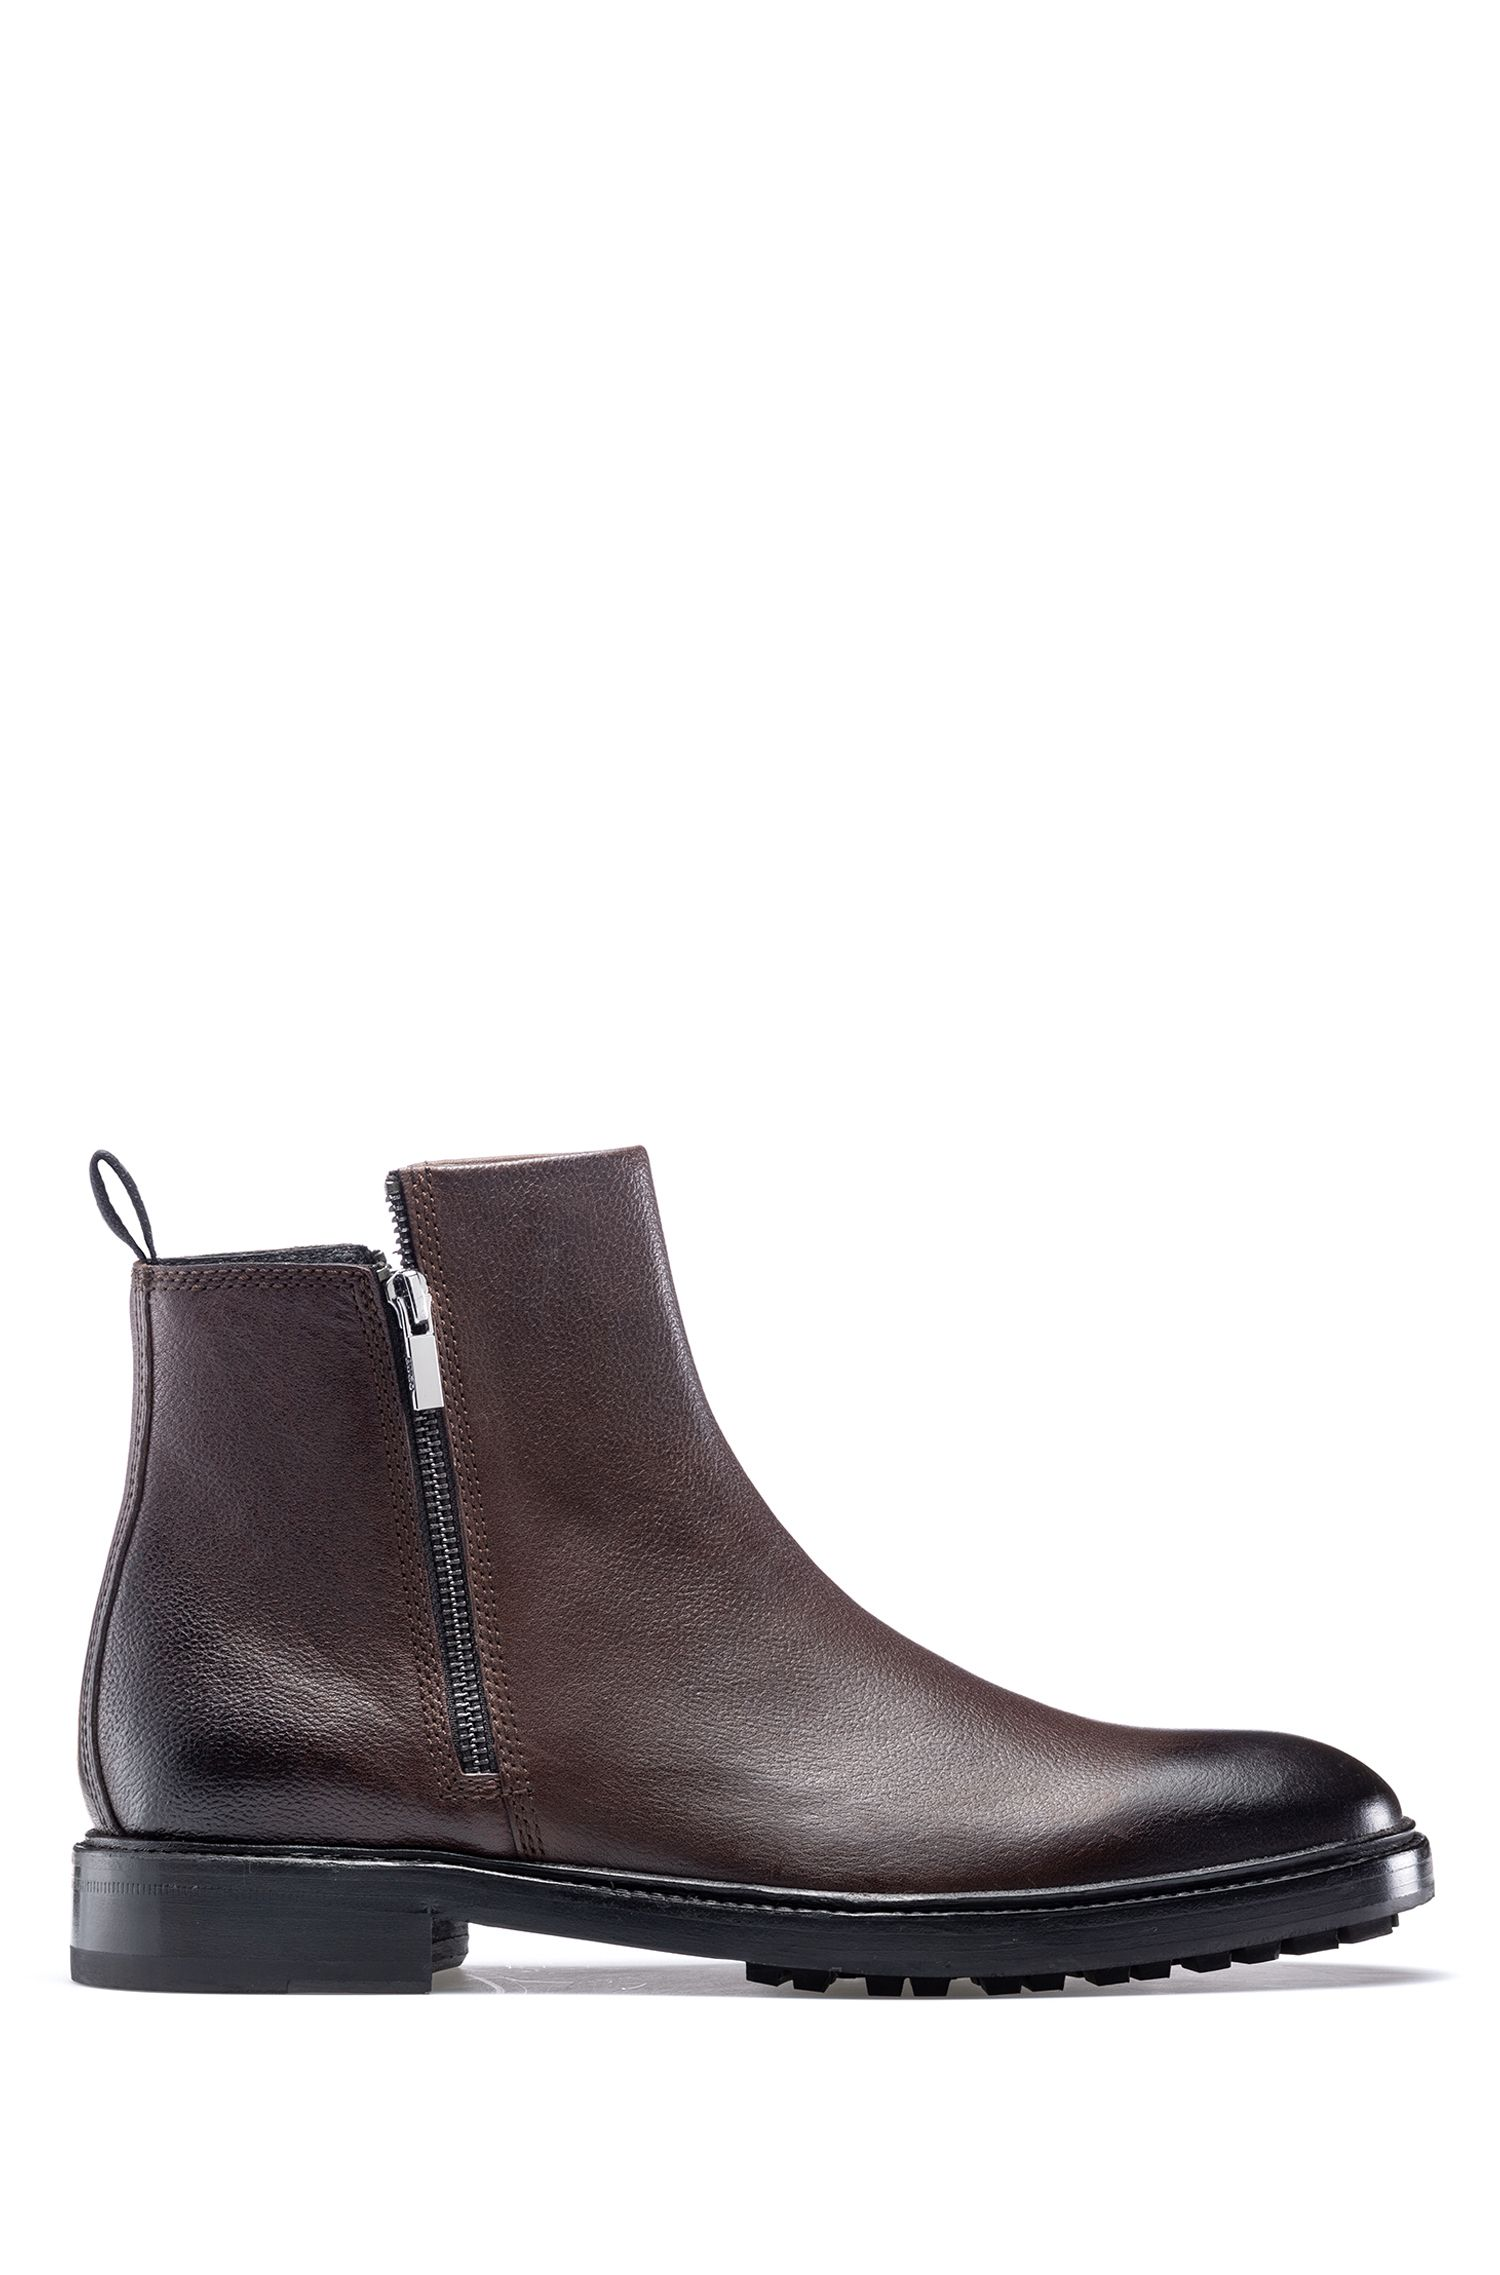 Double-zipper ankle boots in tumbled leather with lug sole, Dark Brown